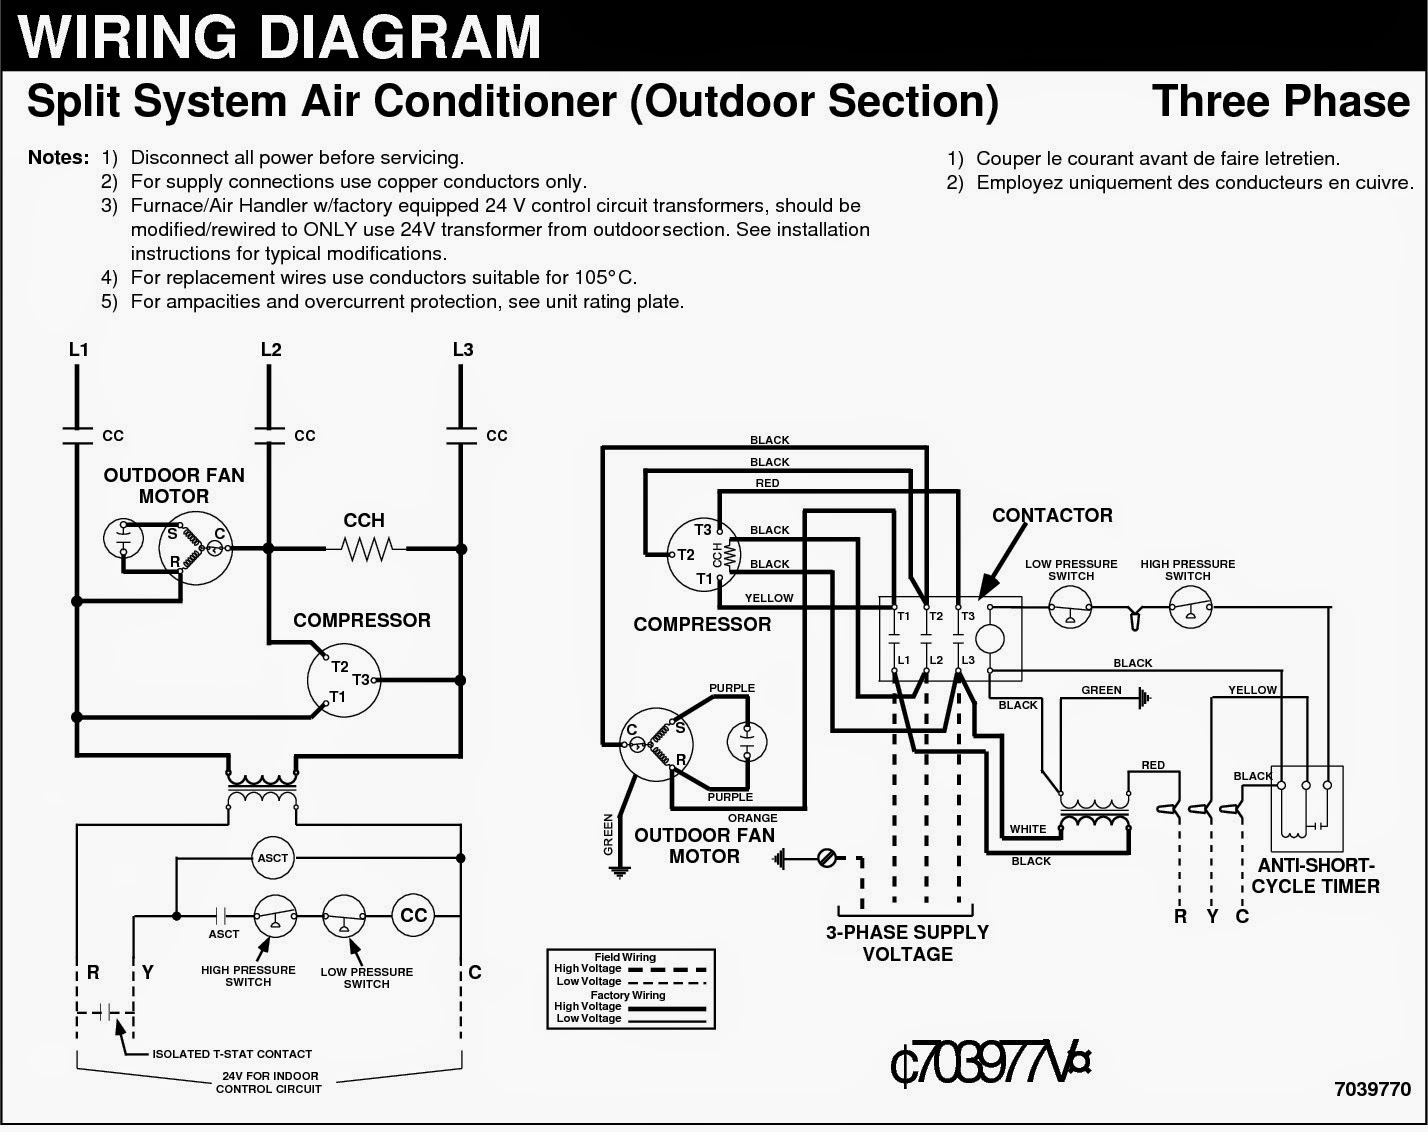 3+phase electrical wiring diagrams for air conditioning systems part two electrical installation wiring diagrams at soozxer.org